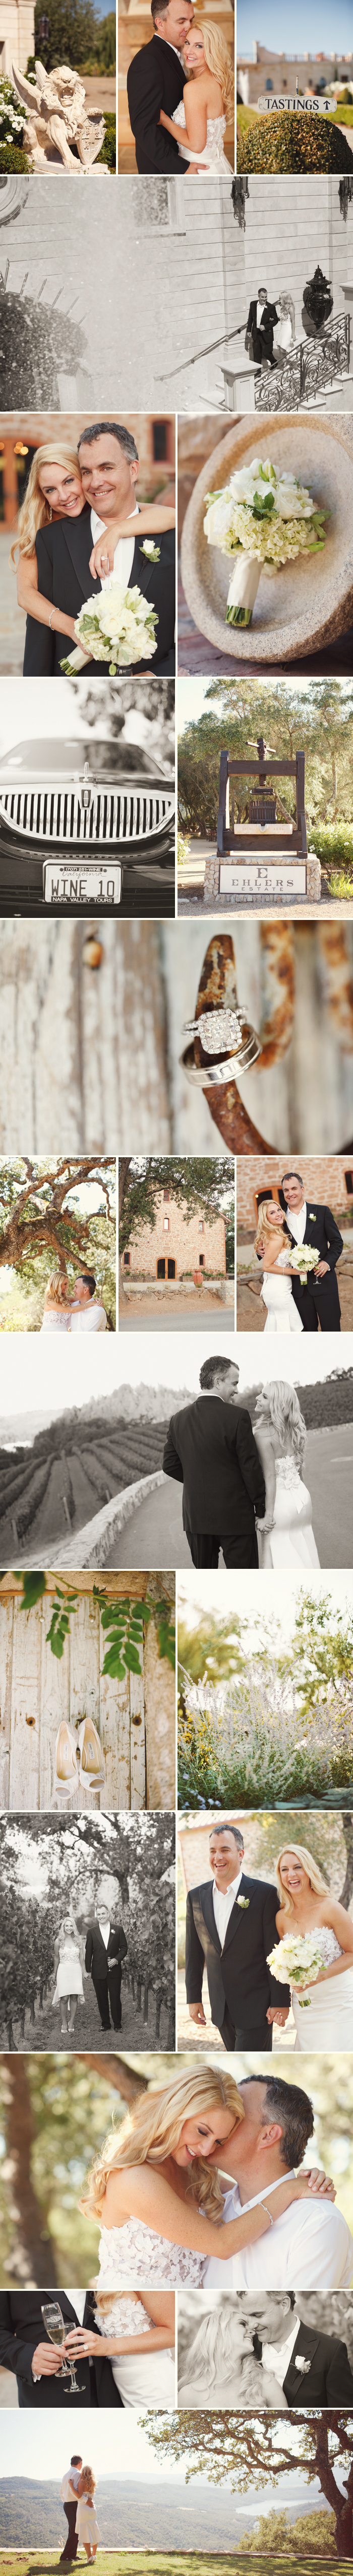 intimate and beautiful napa wedding photography in vineyards and wineries